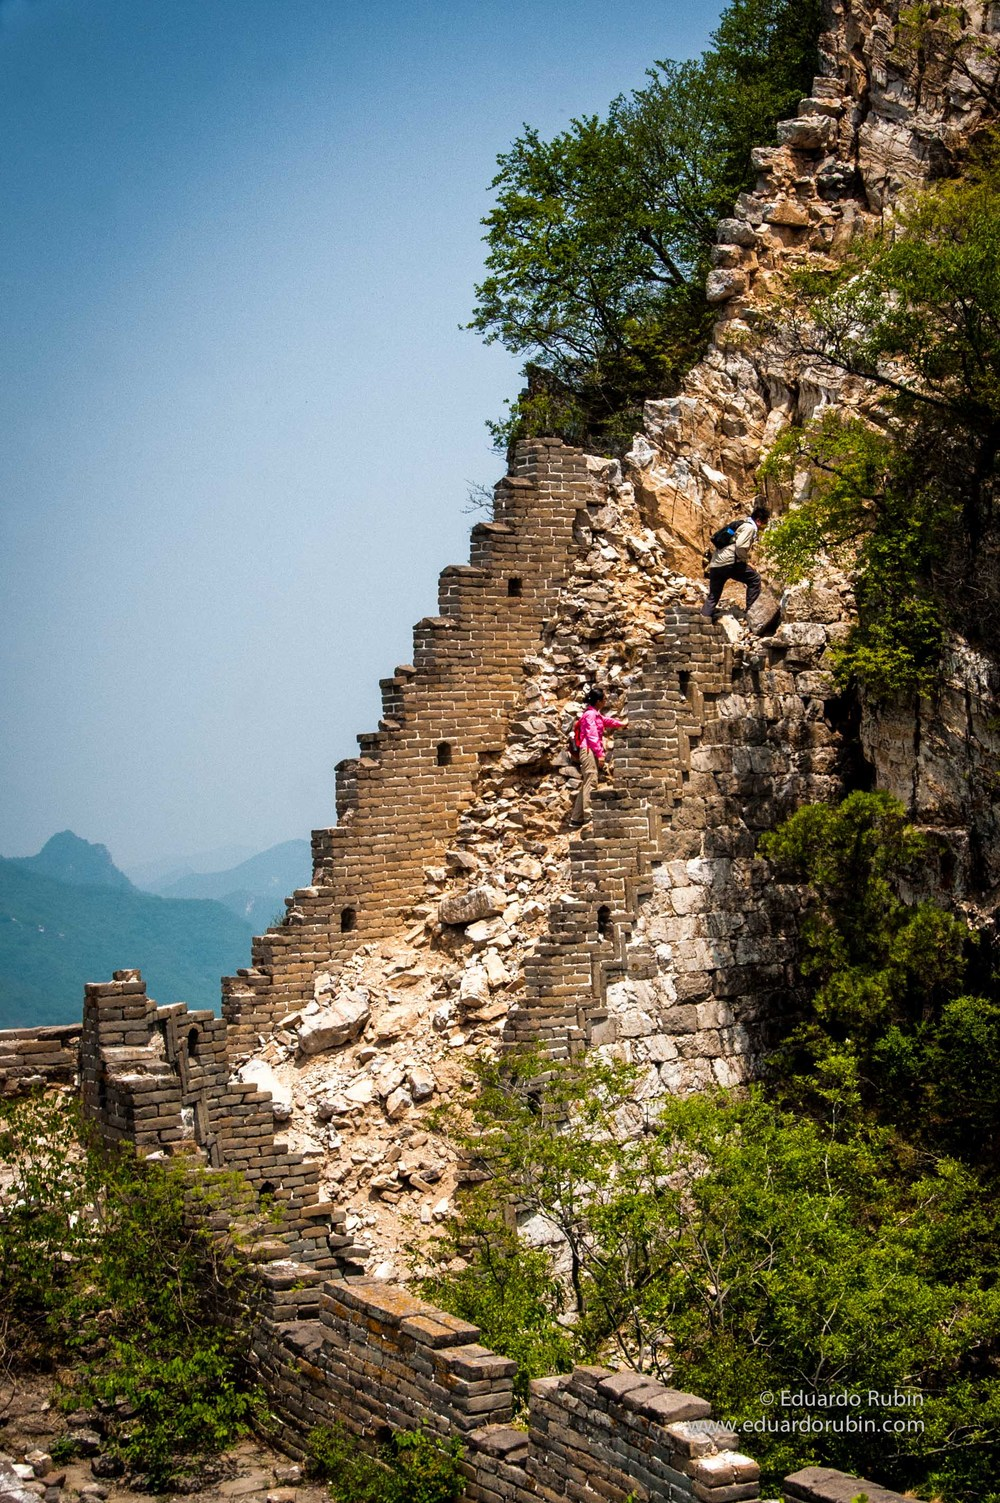 GreatWall-9.jpg